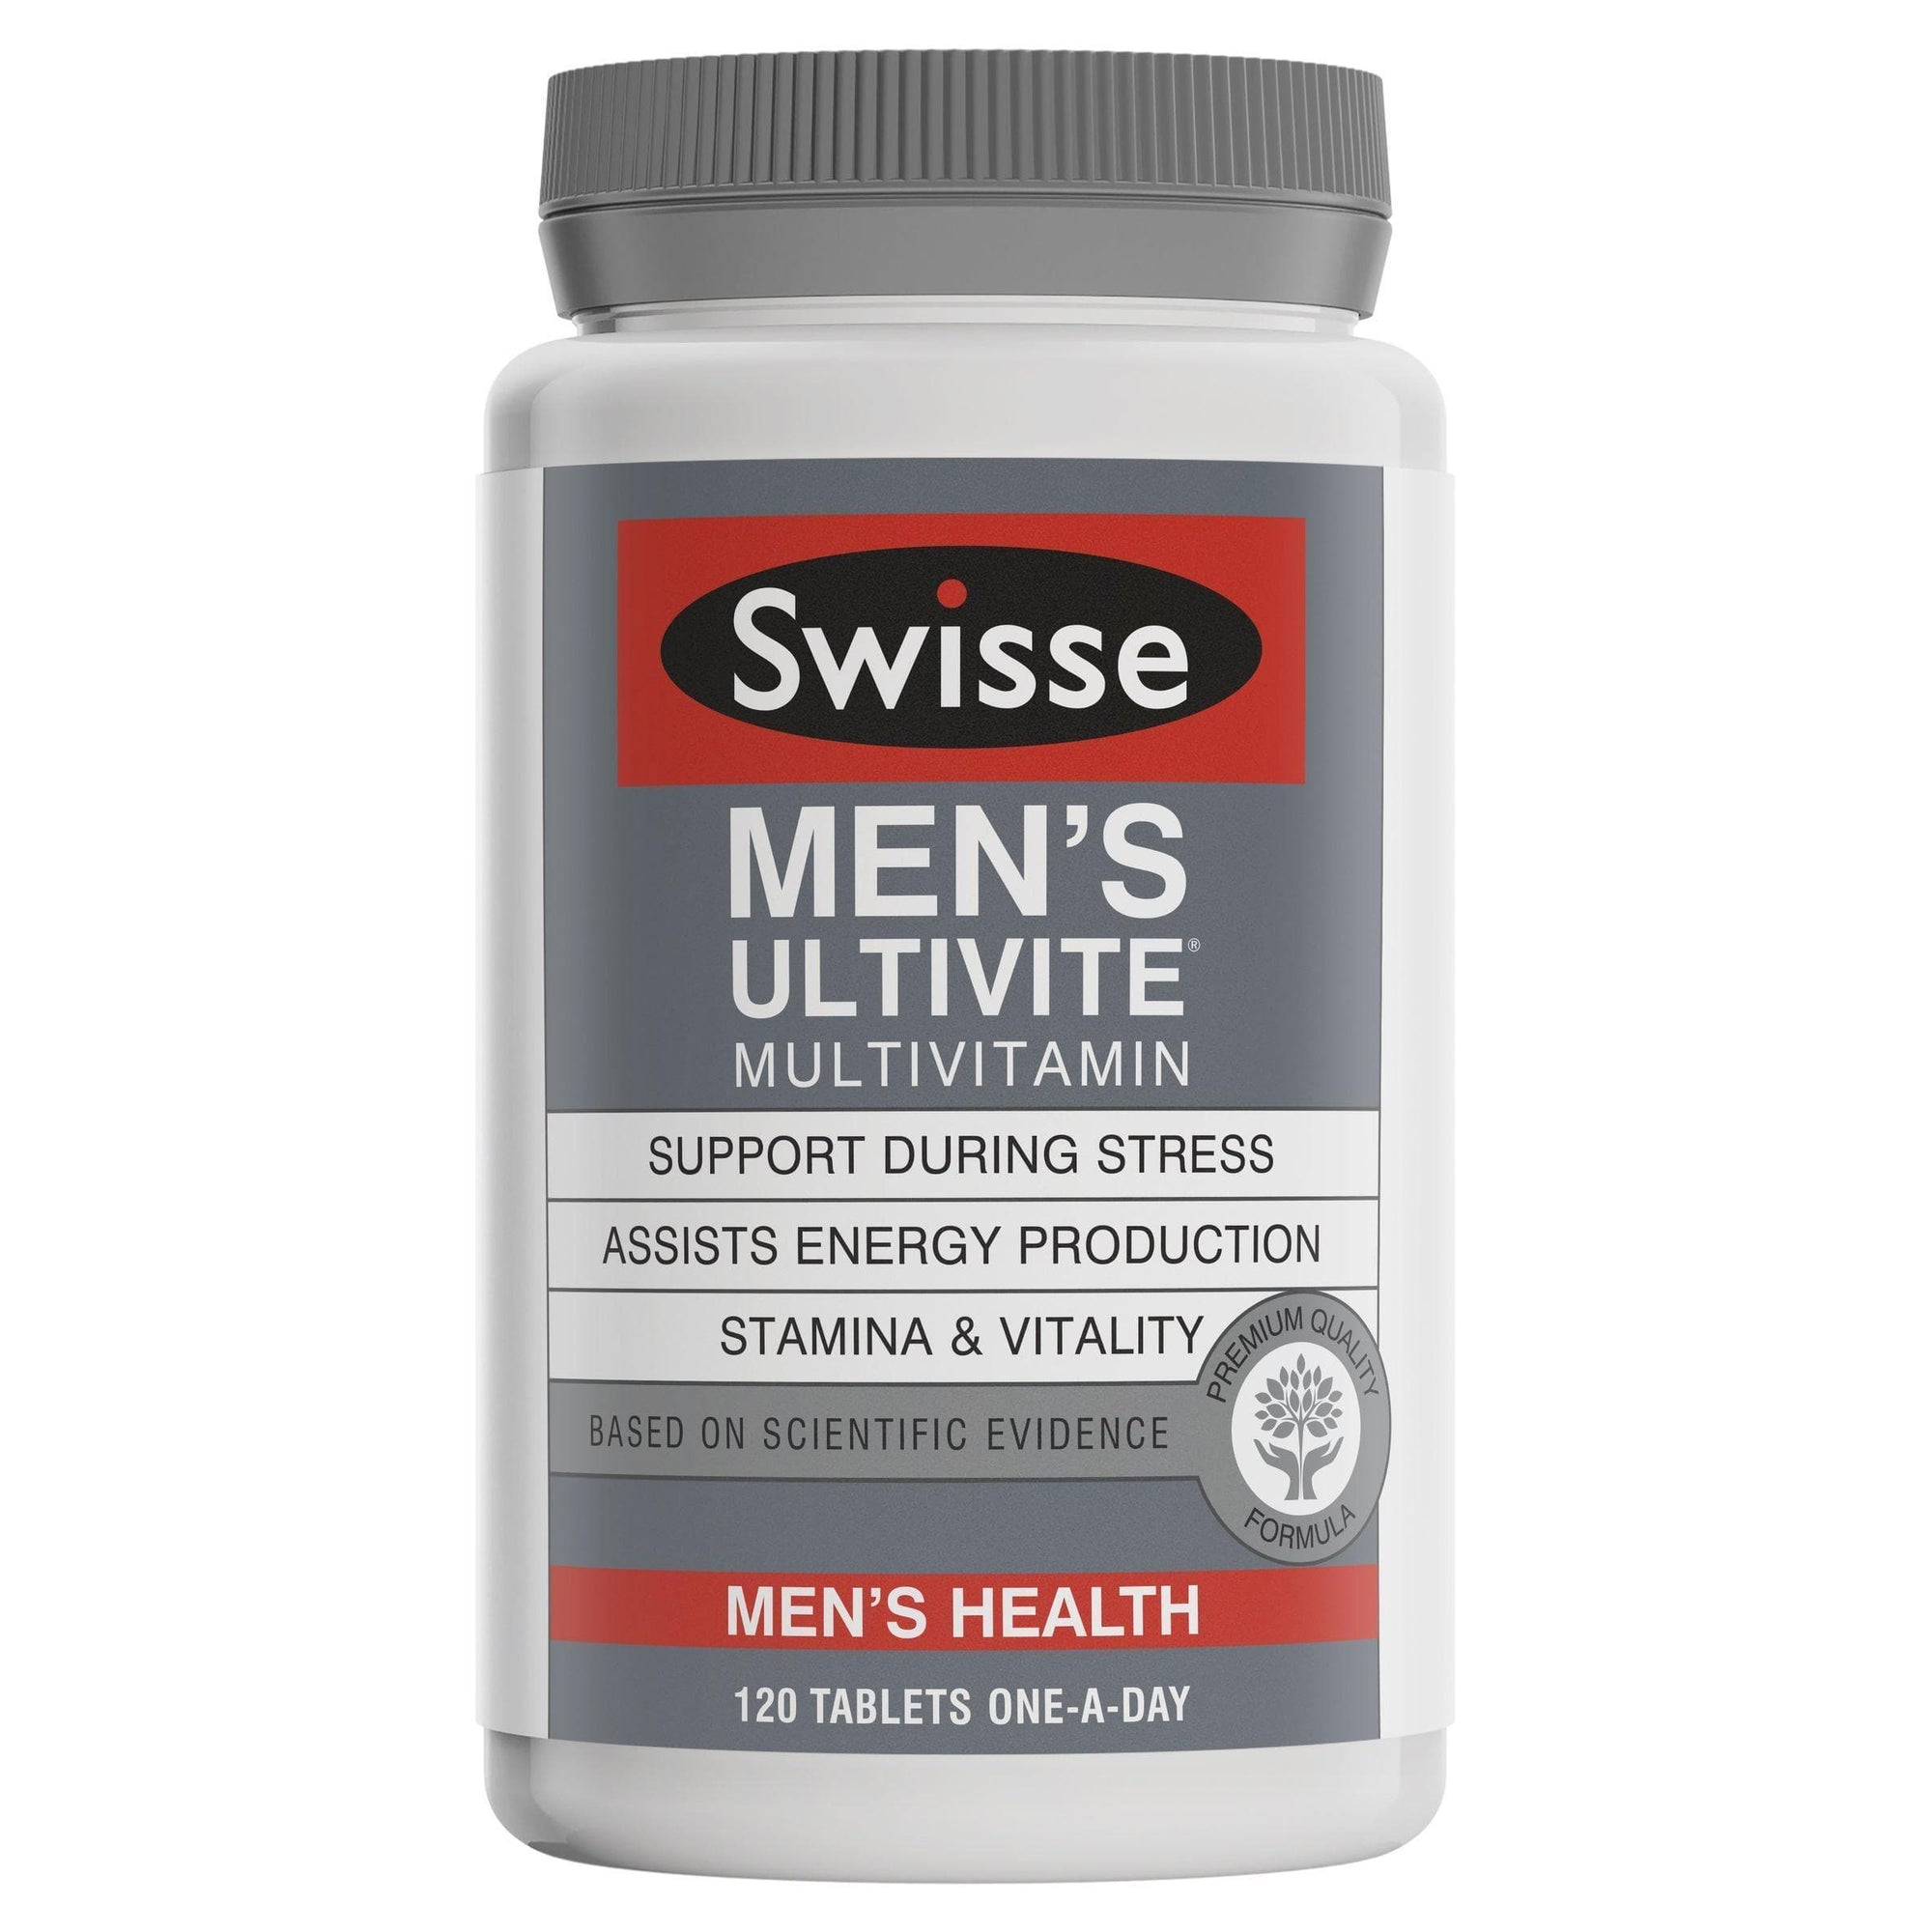 Ultivite Mens By Swisse - 120 F1 Tablets